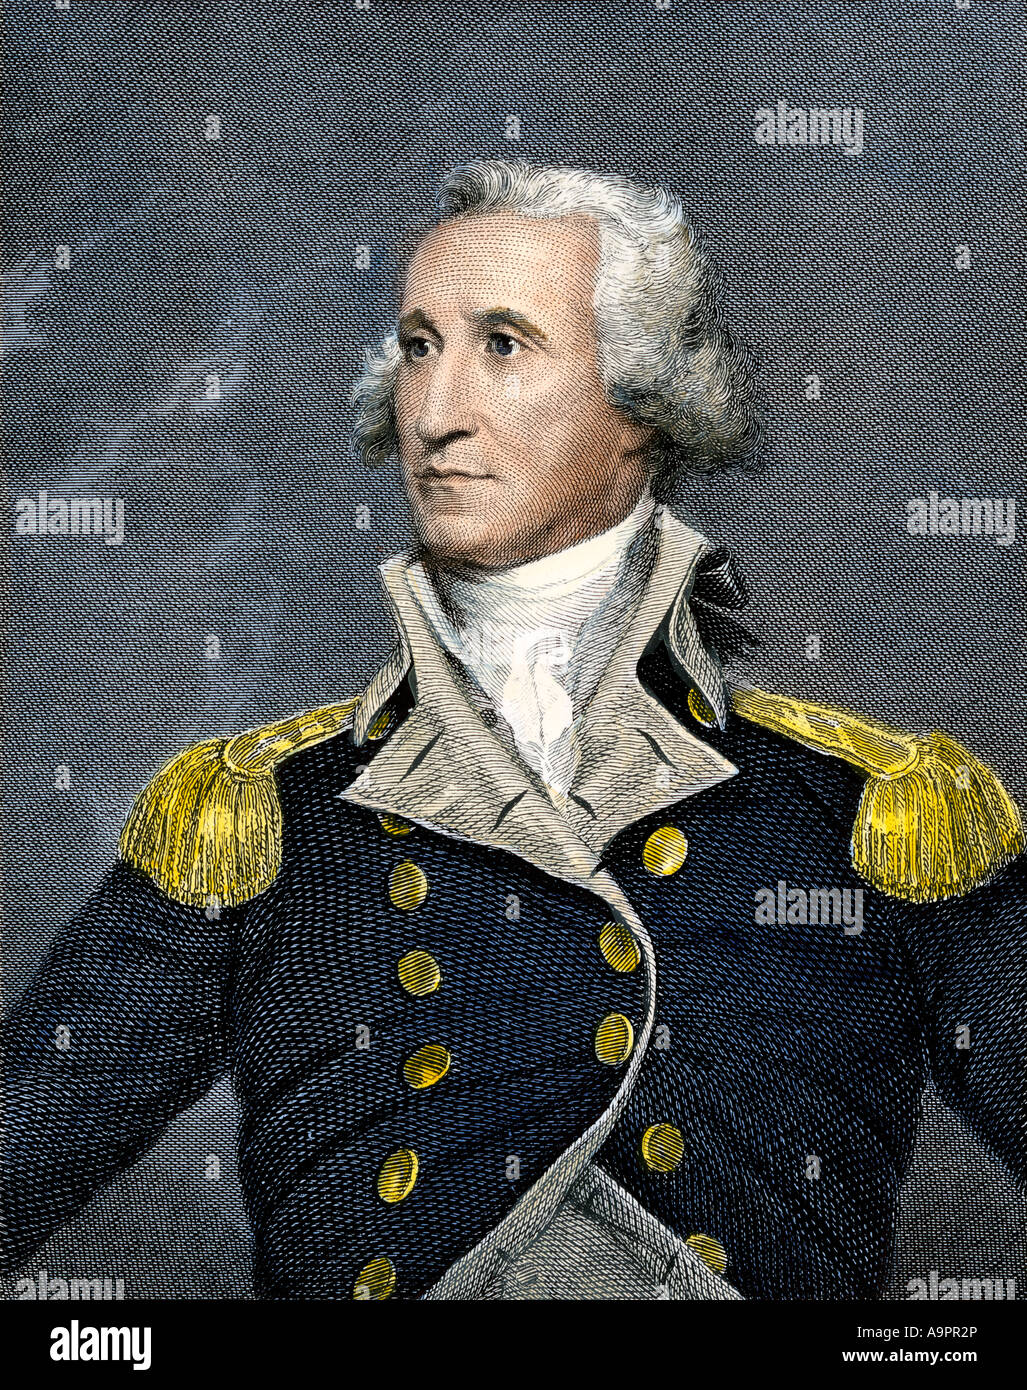 General George Washington - Stock Image